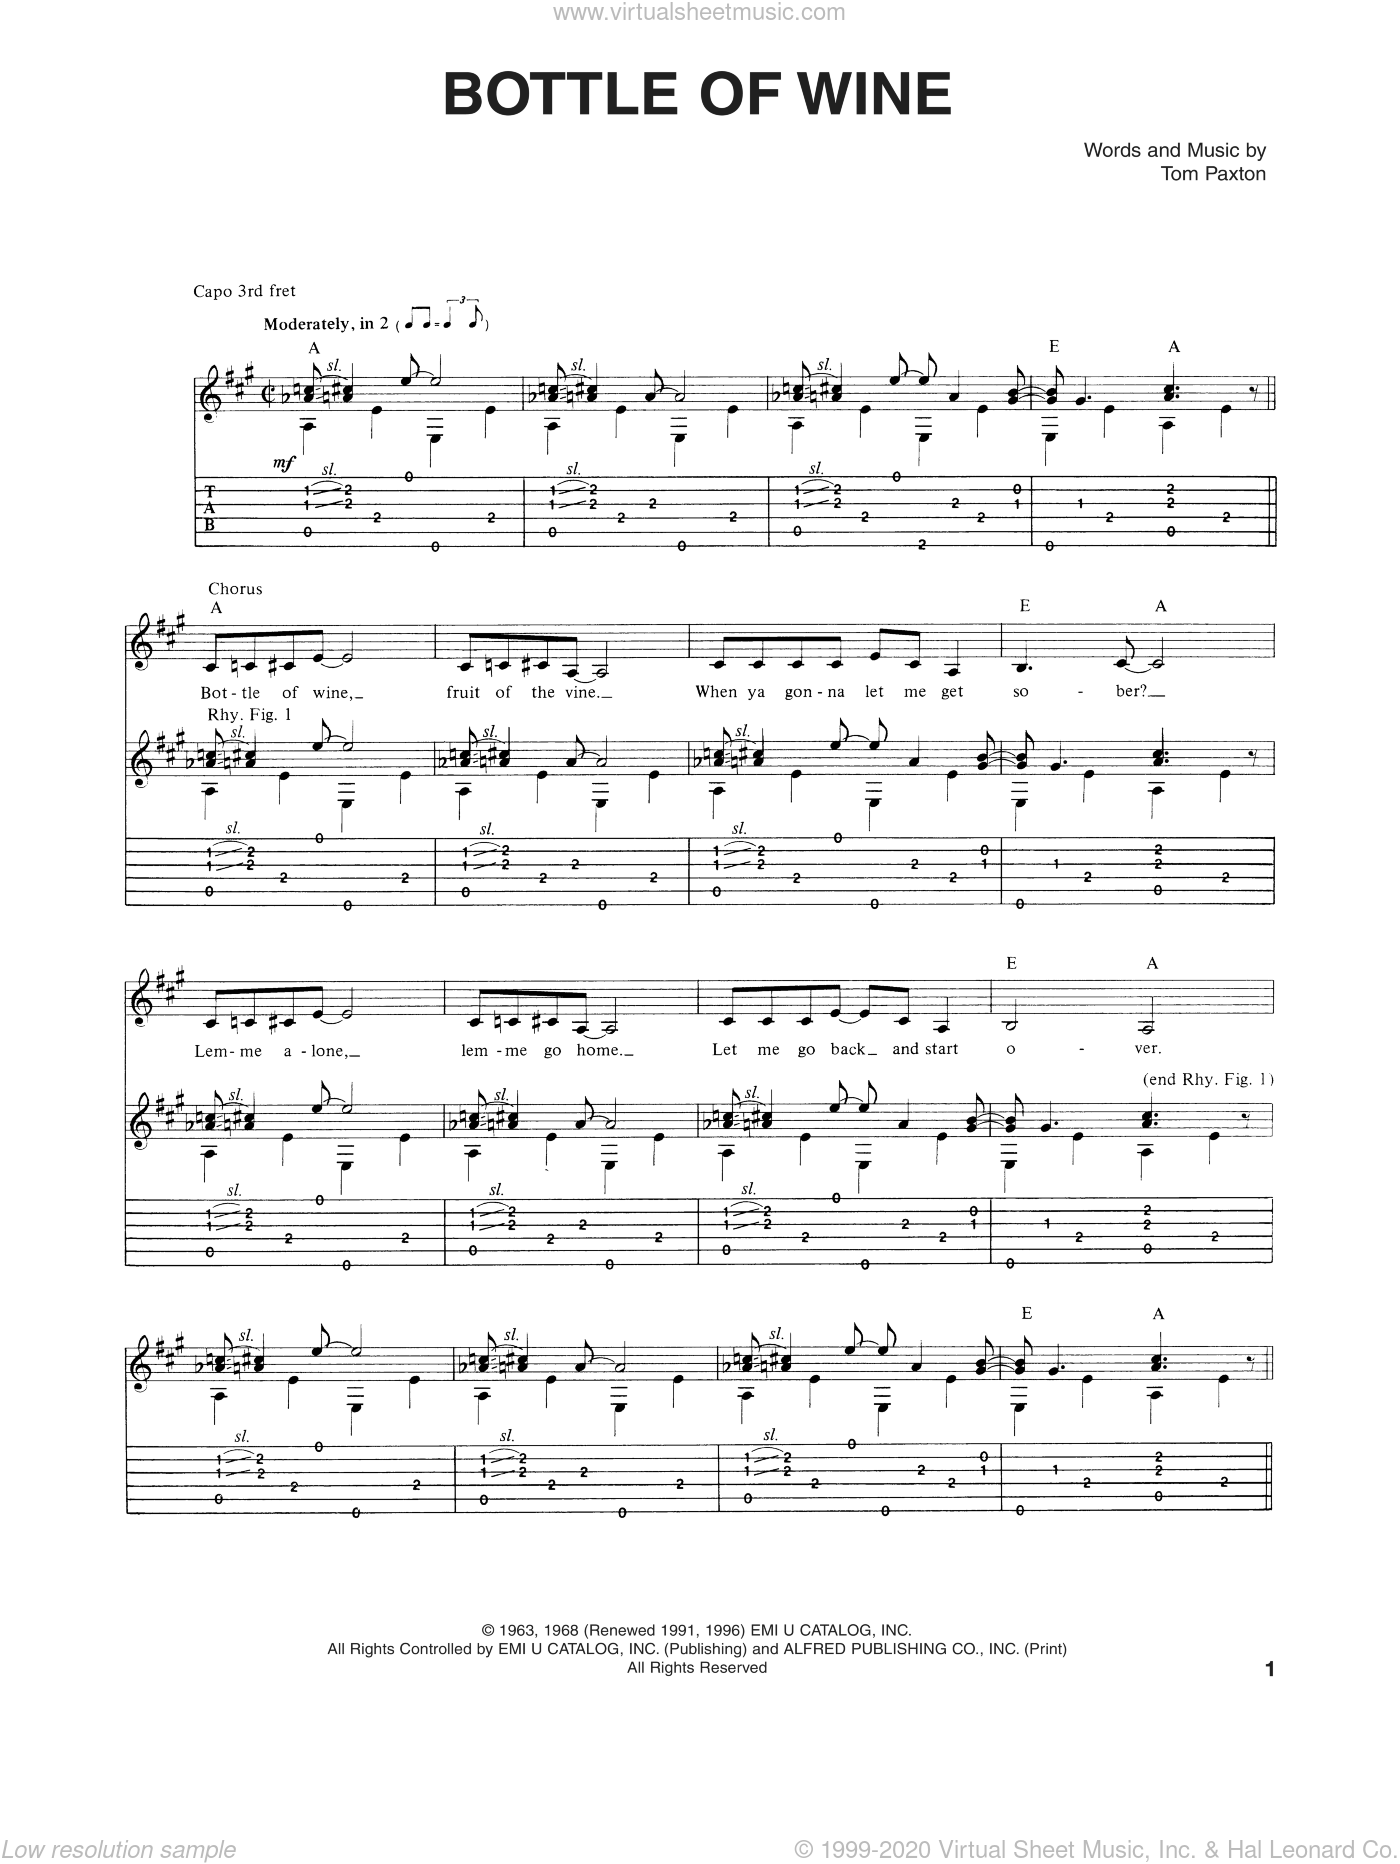 Bottle Of Wine sheet music for guitar (tablature) by Tom Paxton, intermediate skill level